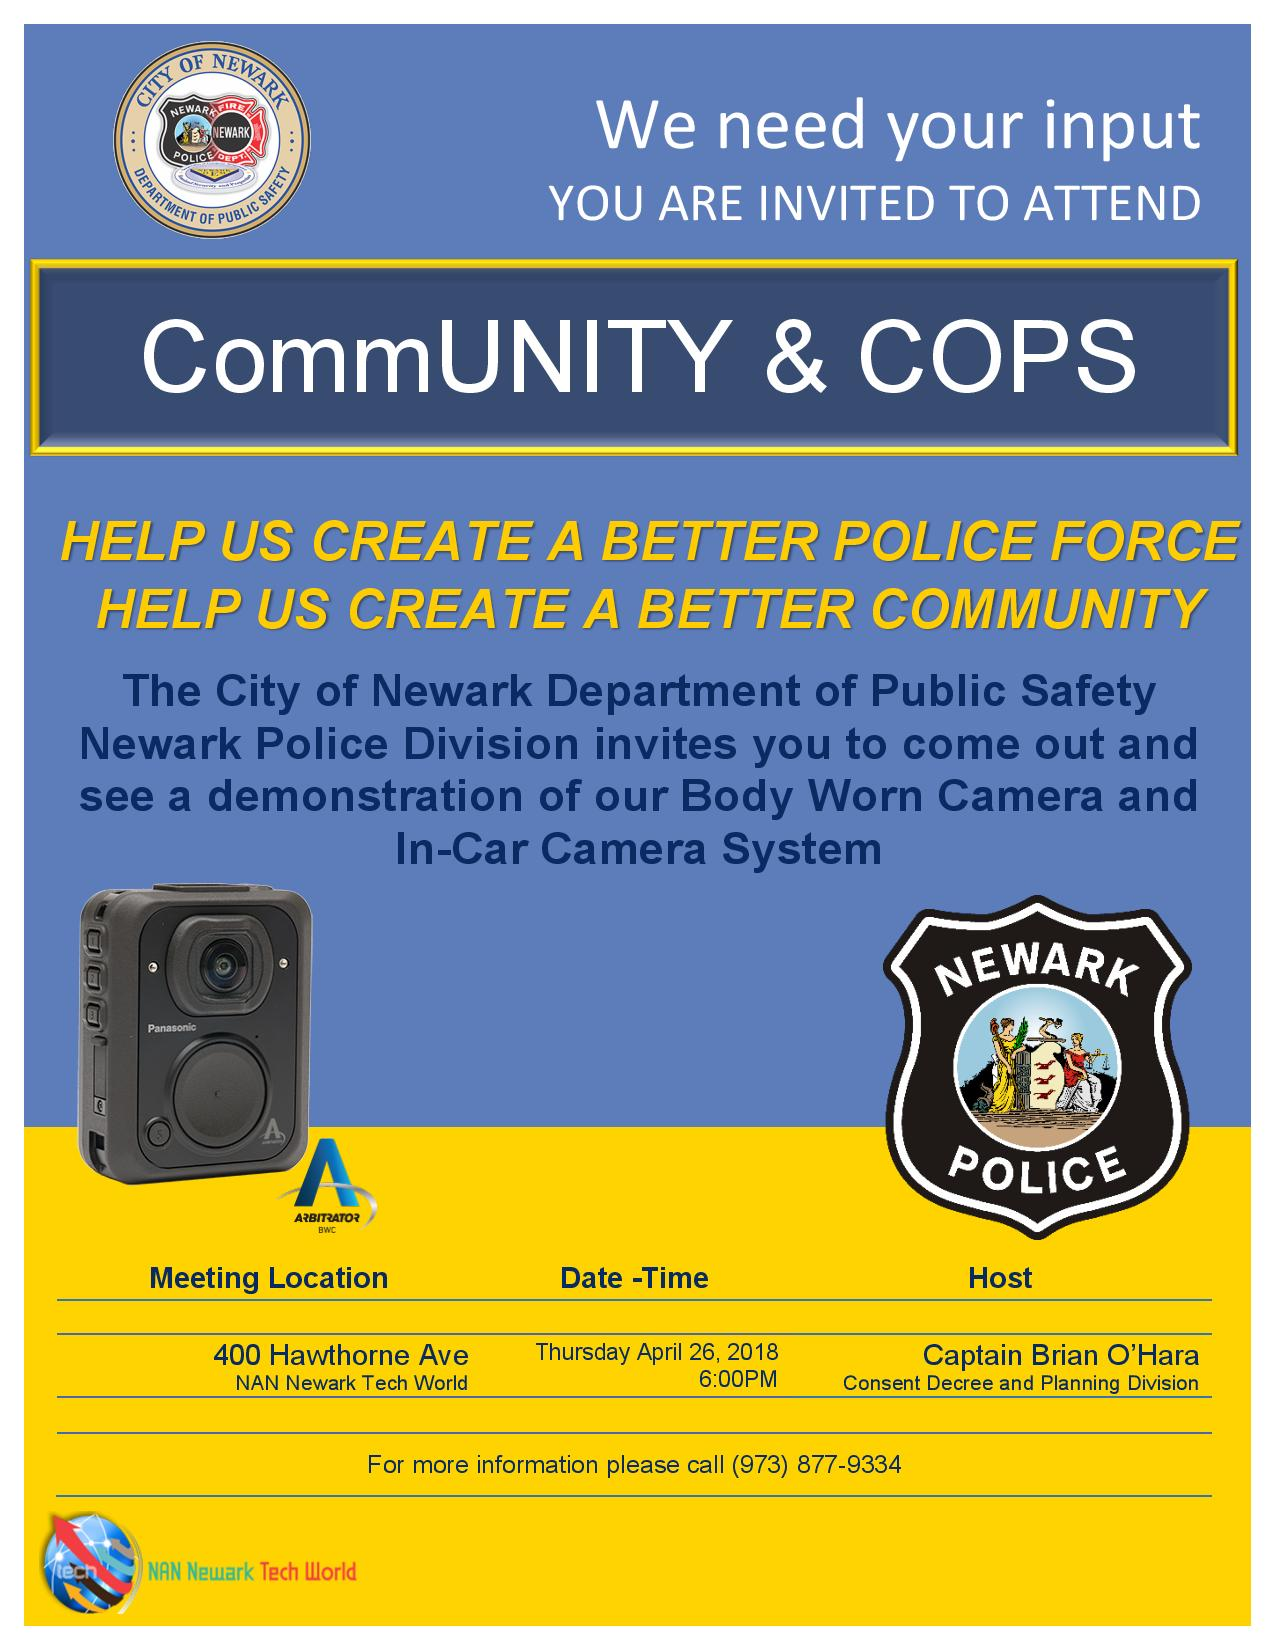 BWC_Demo_Flyer-page-001.jpg